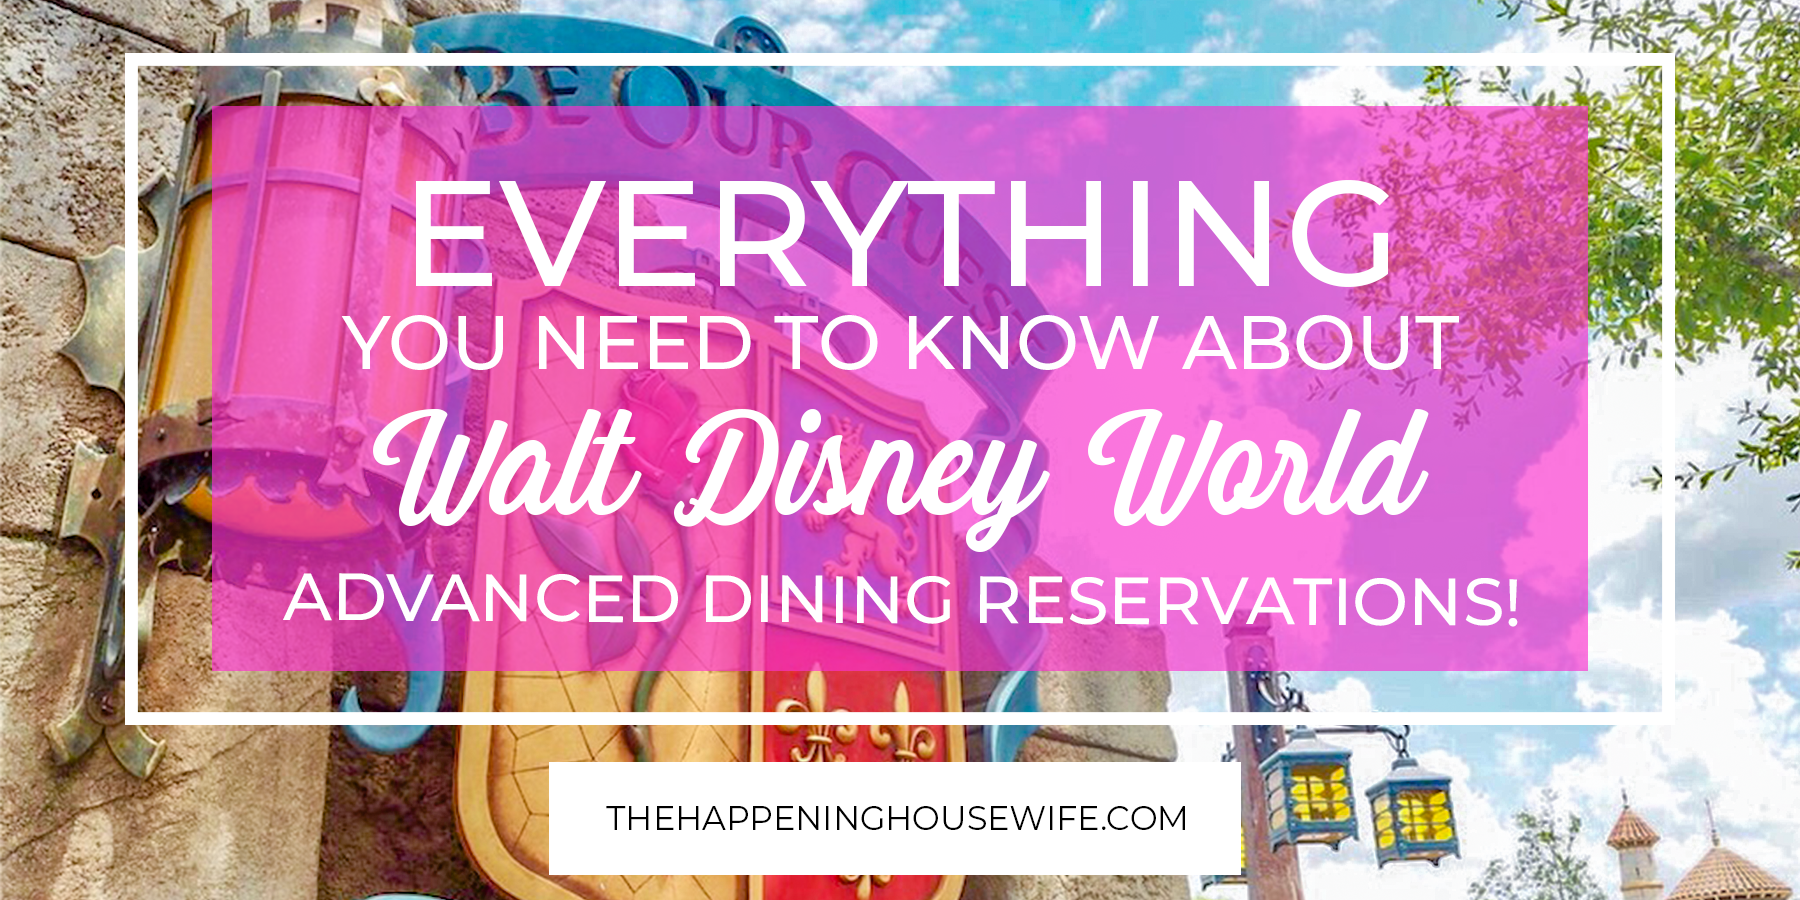 Everything you need to know about Advanced Dining Reservations at Disney World ADR at DIsney World.png